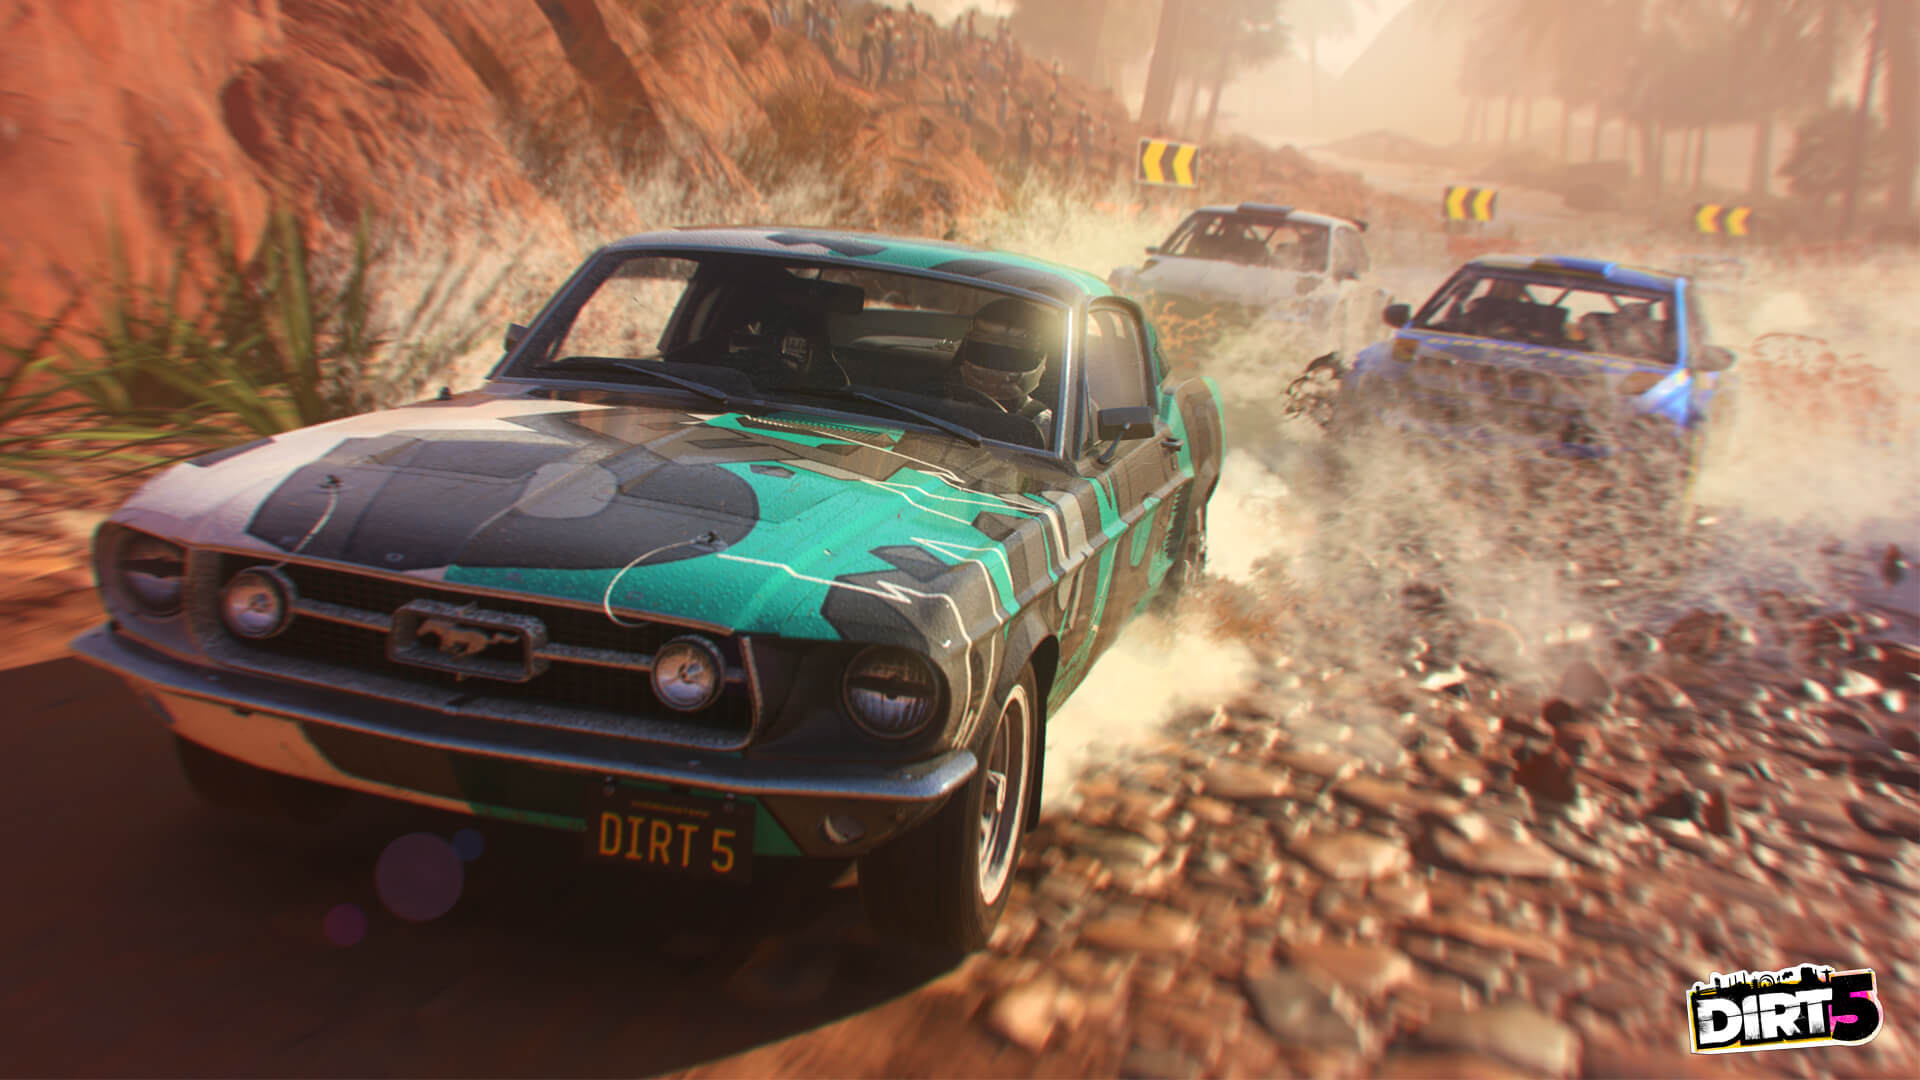 DIRT 5 Preview